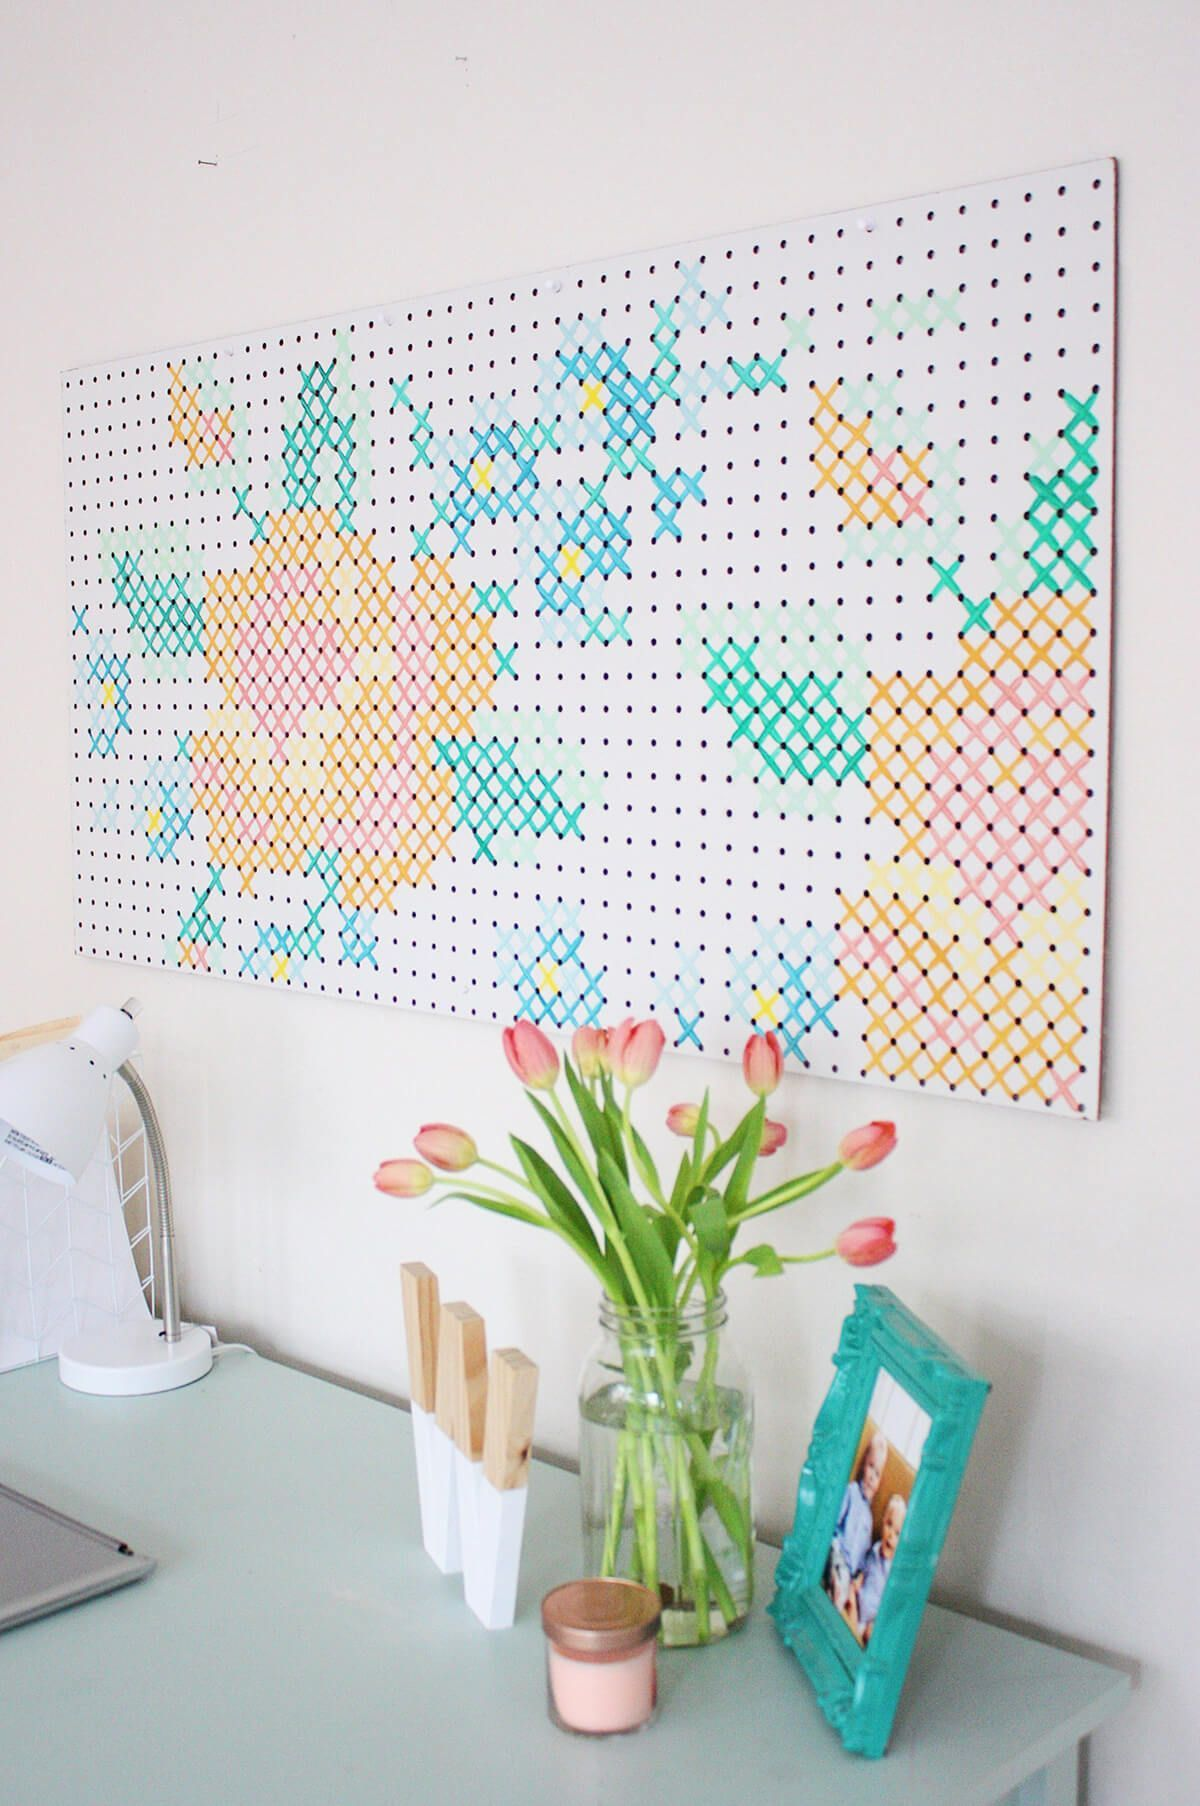 Other Decorative Pegboard Ideas for the Less Artistic #artistic #Decorative #Ideas #Pegboard